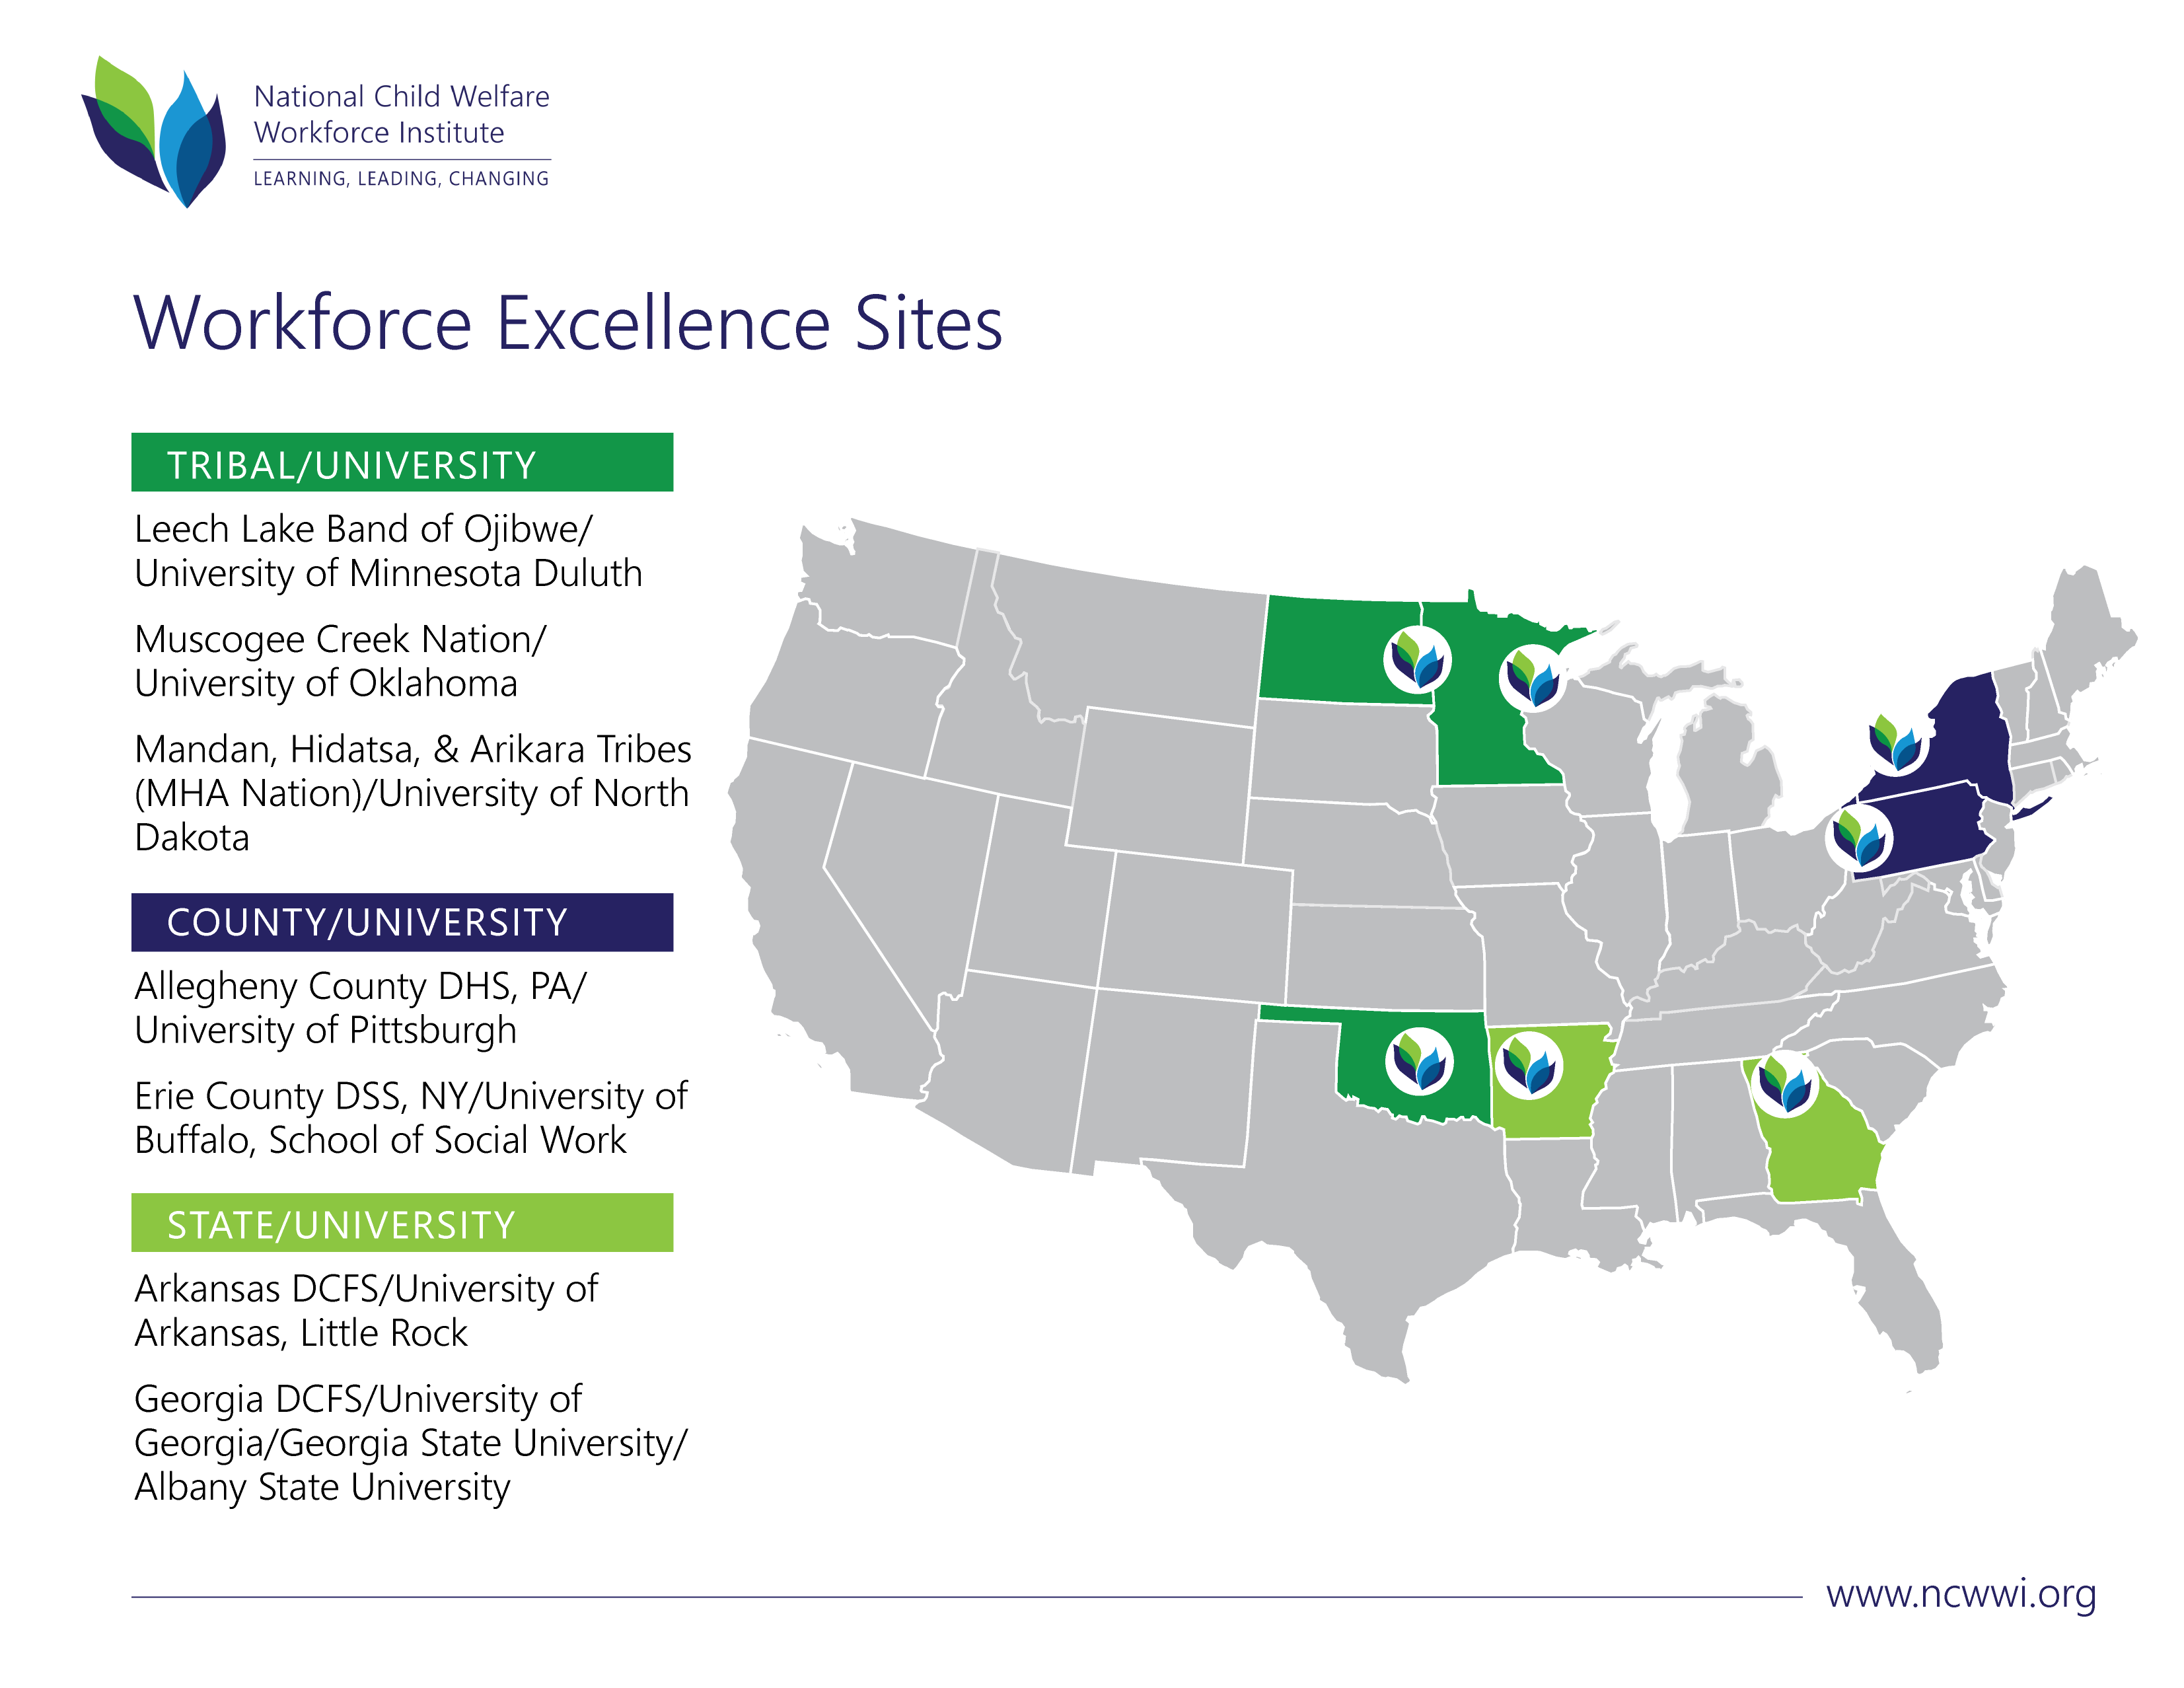 NCWWI Workforce Excellence Sites map